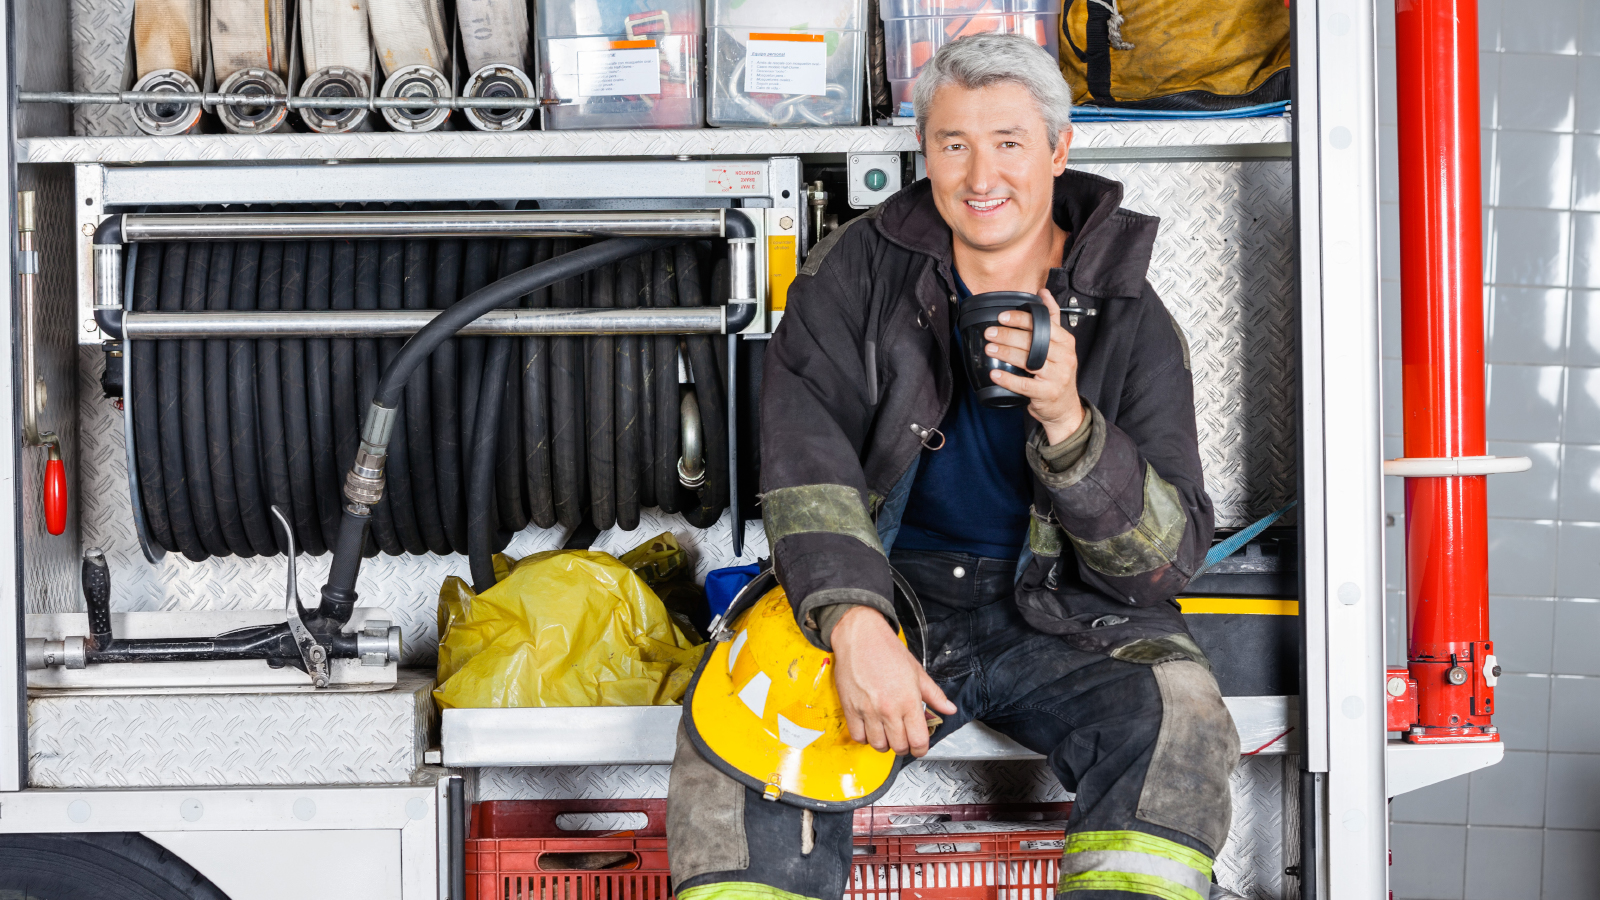 Firefighter relaxing on firetruck while drinking coffee